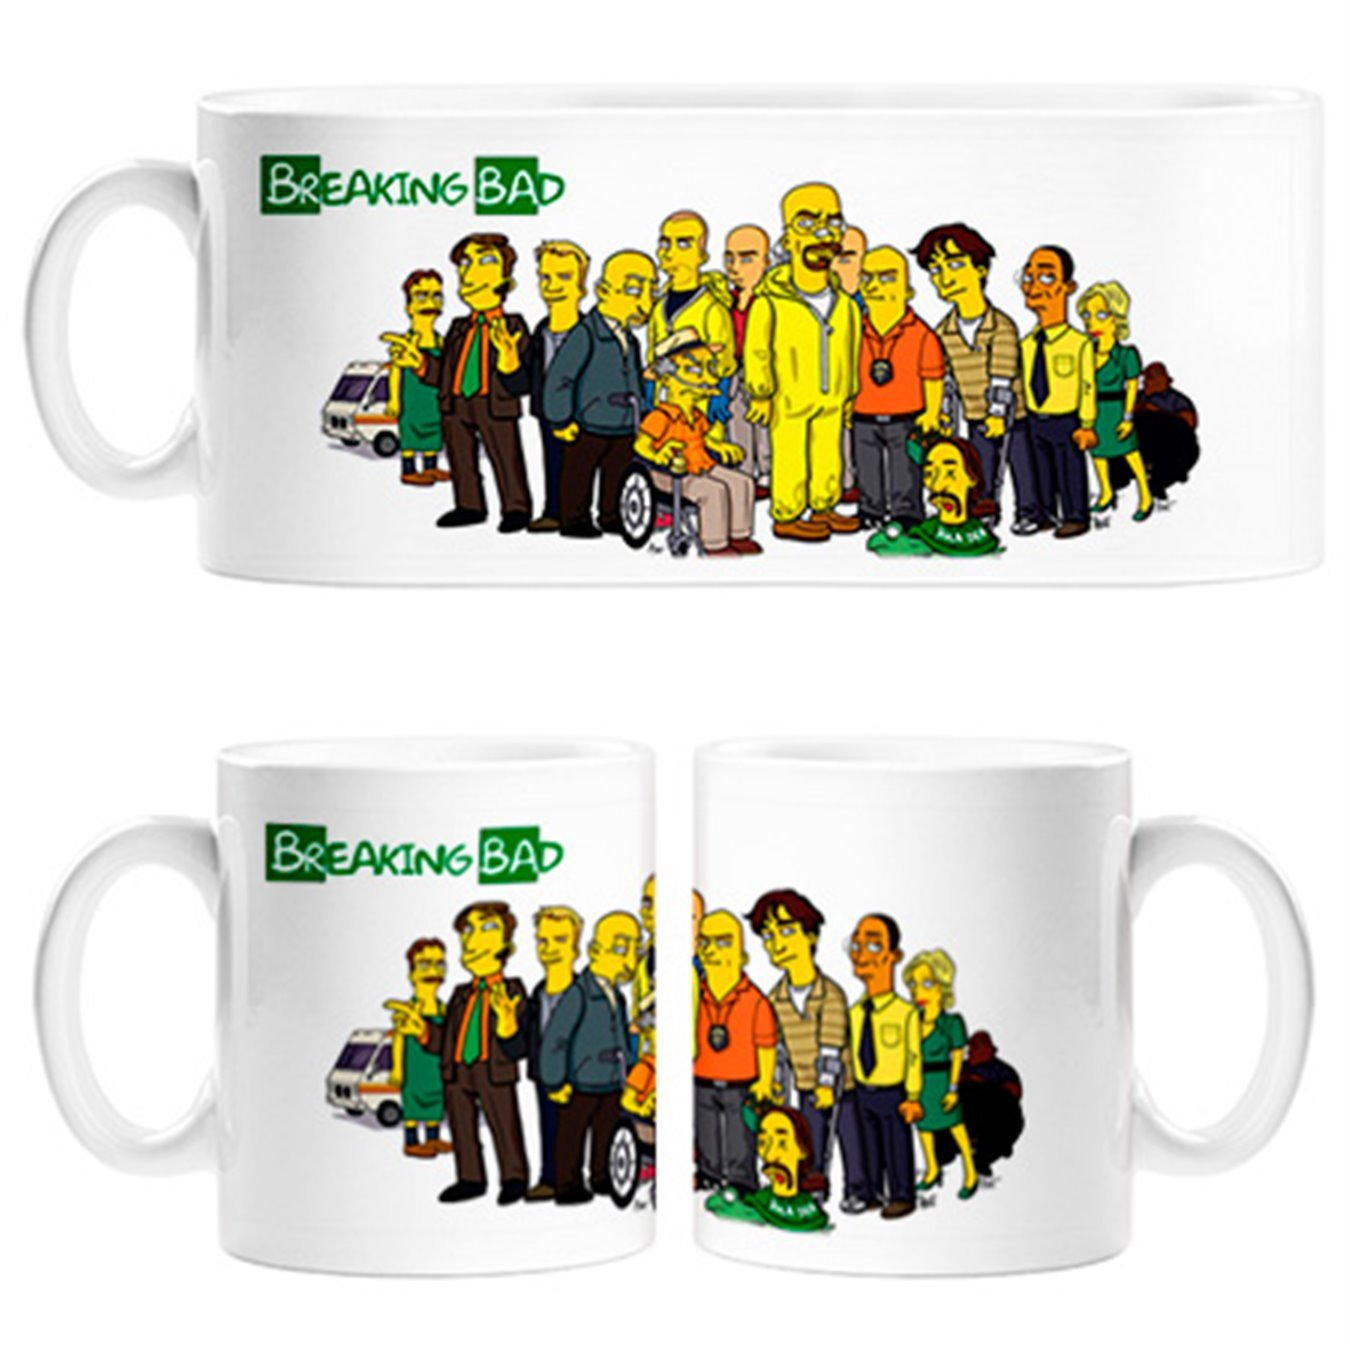 Taza Breaking Bad Personajes modo Simpsonshttps://amzn.to/2BAx0bB